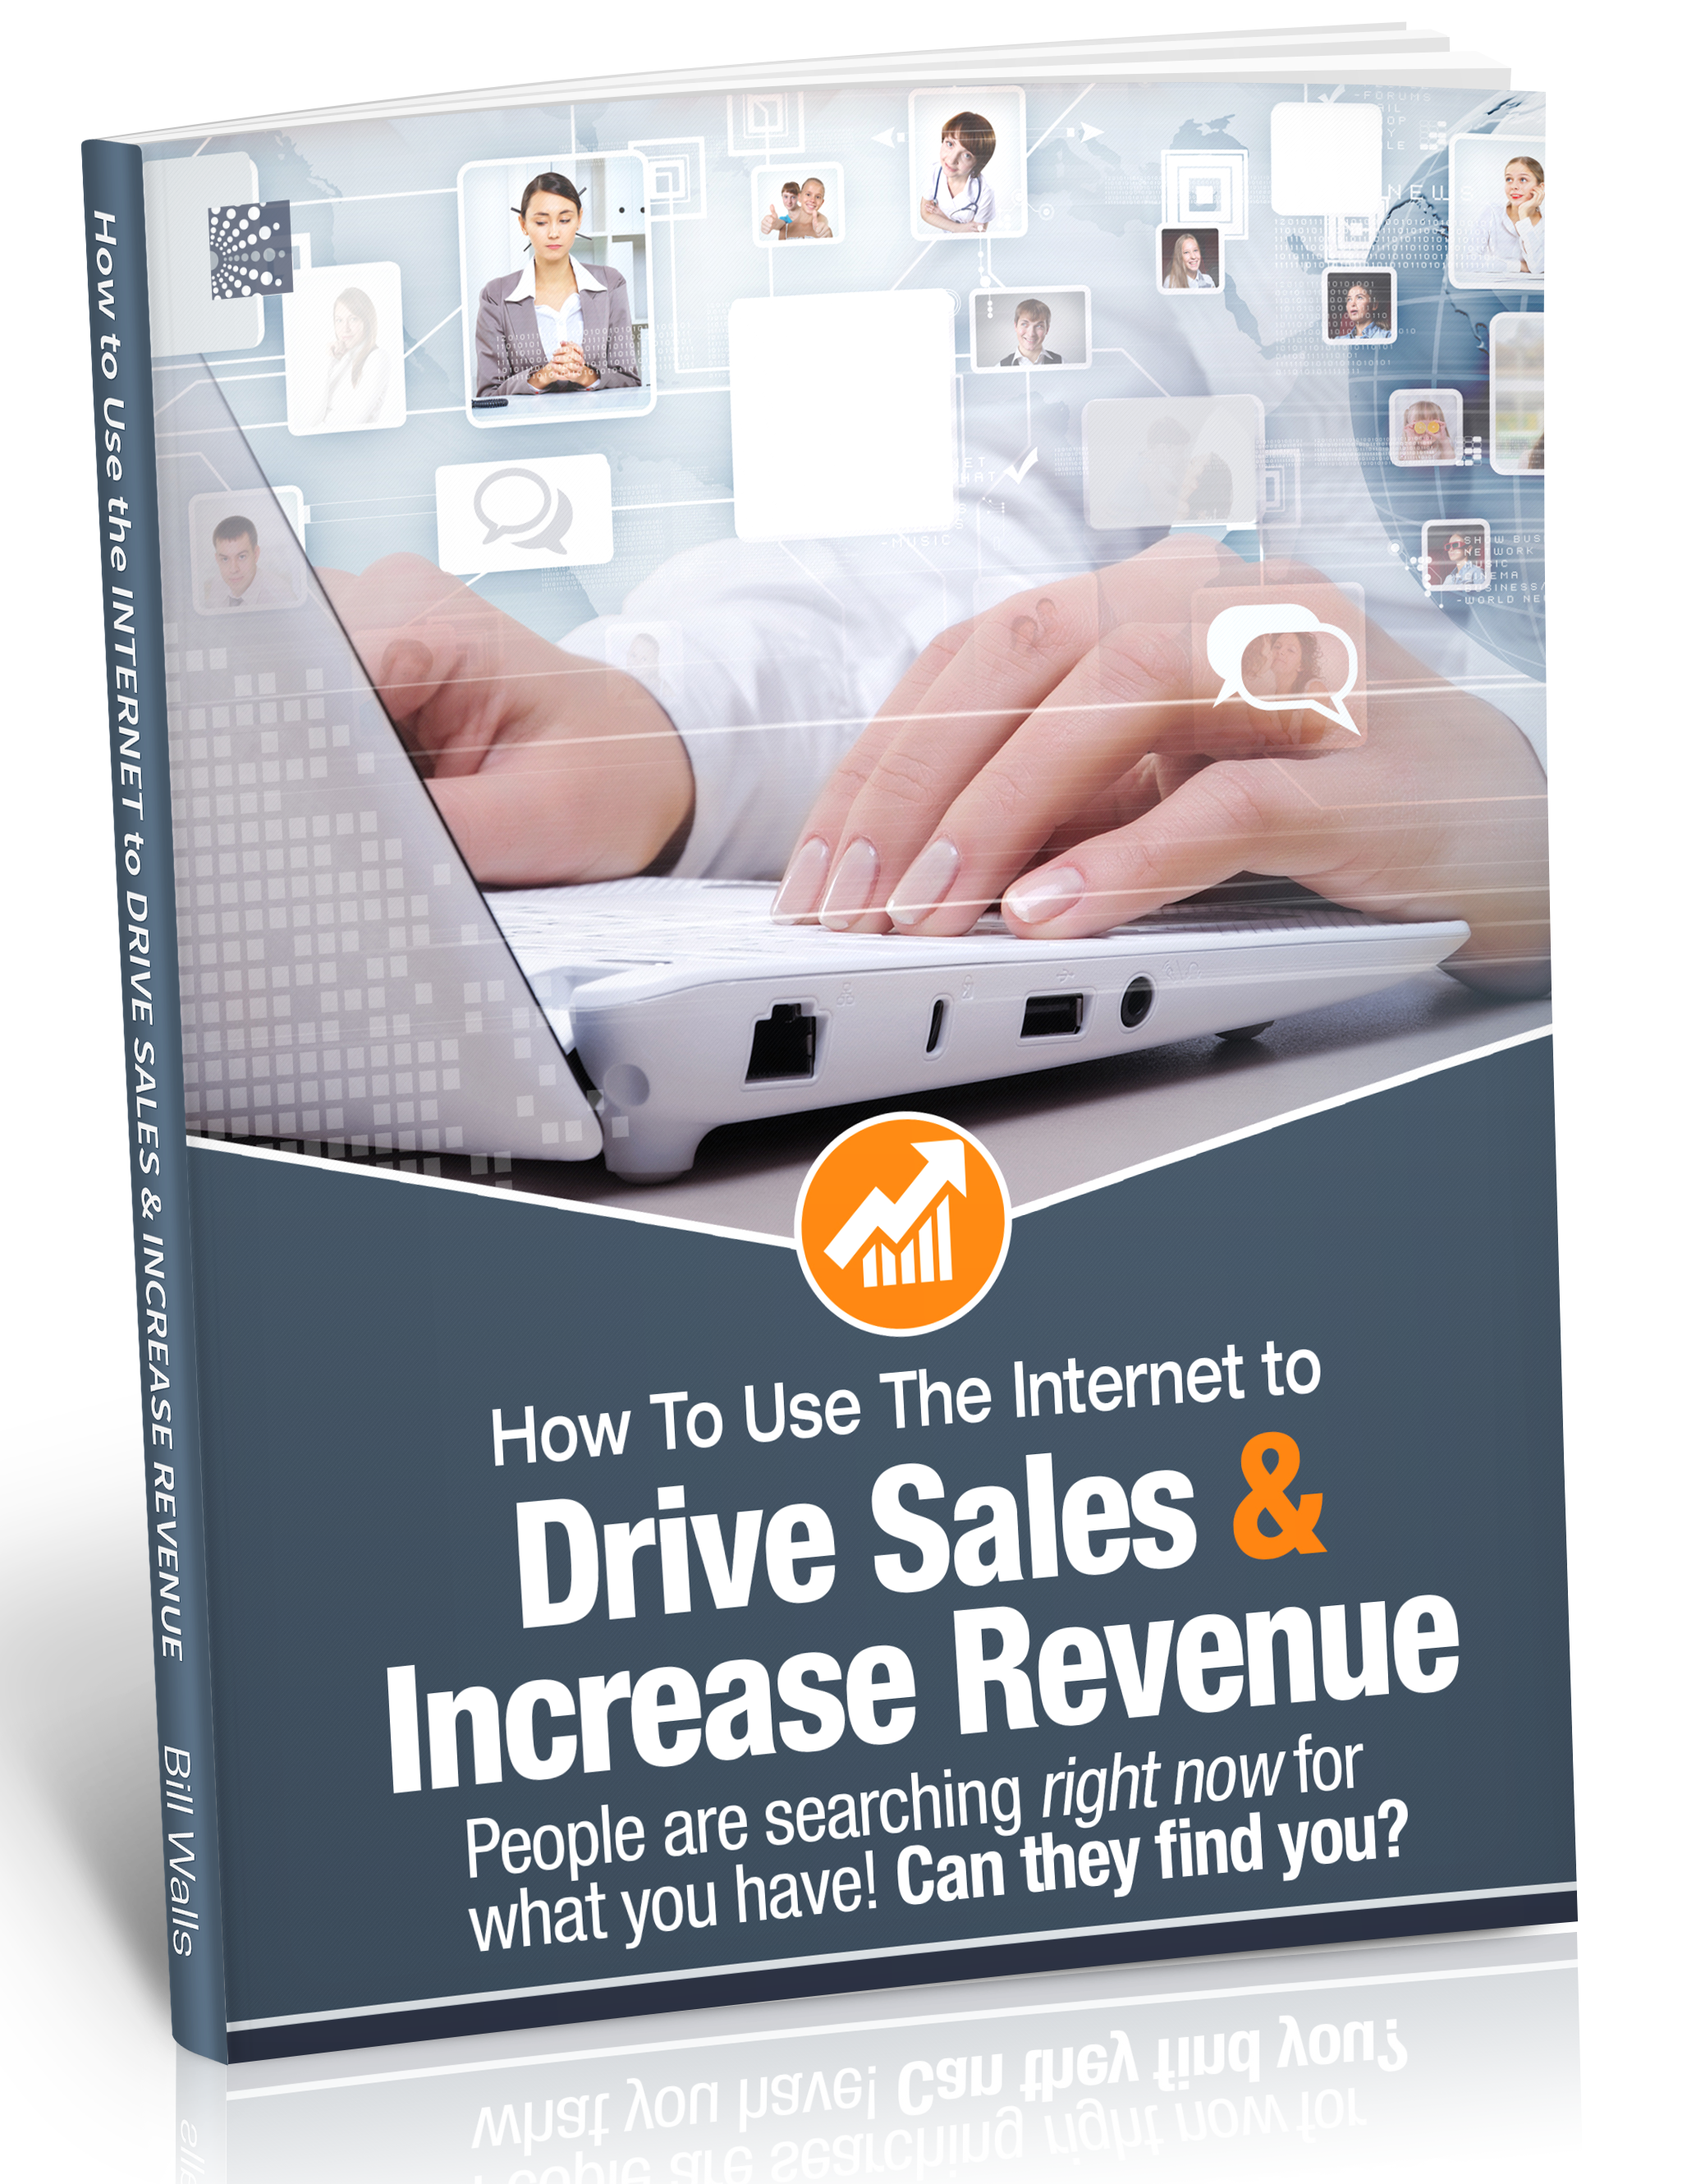 How-To-Use-the-Internet-to-Drive-Sales-and-Increase-Revenue